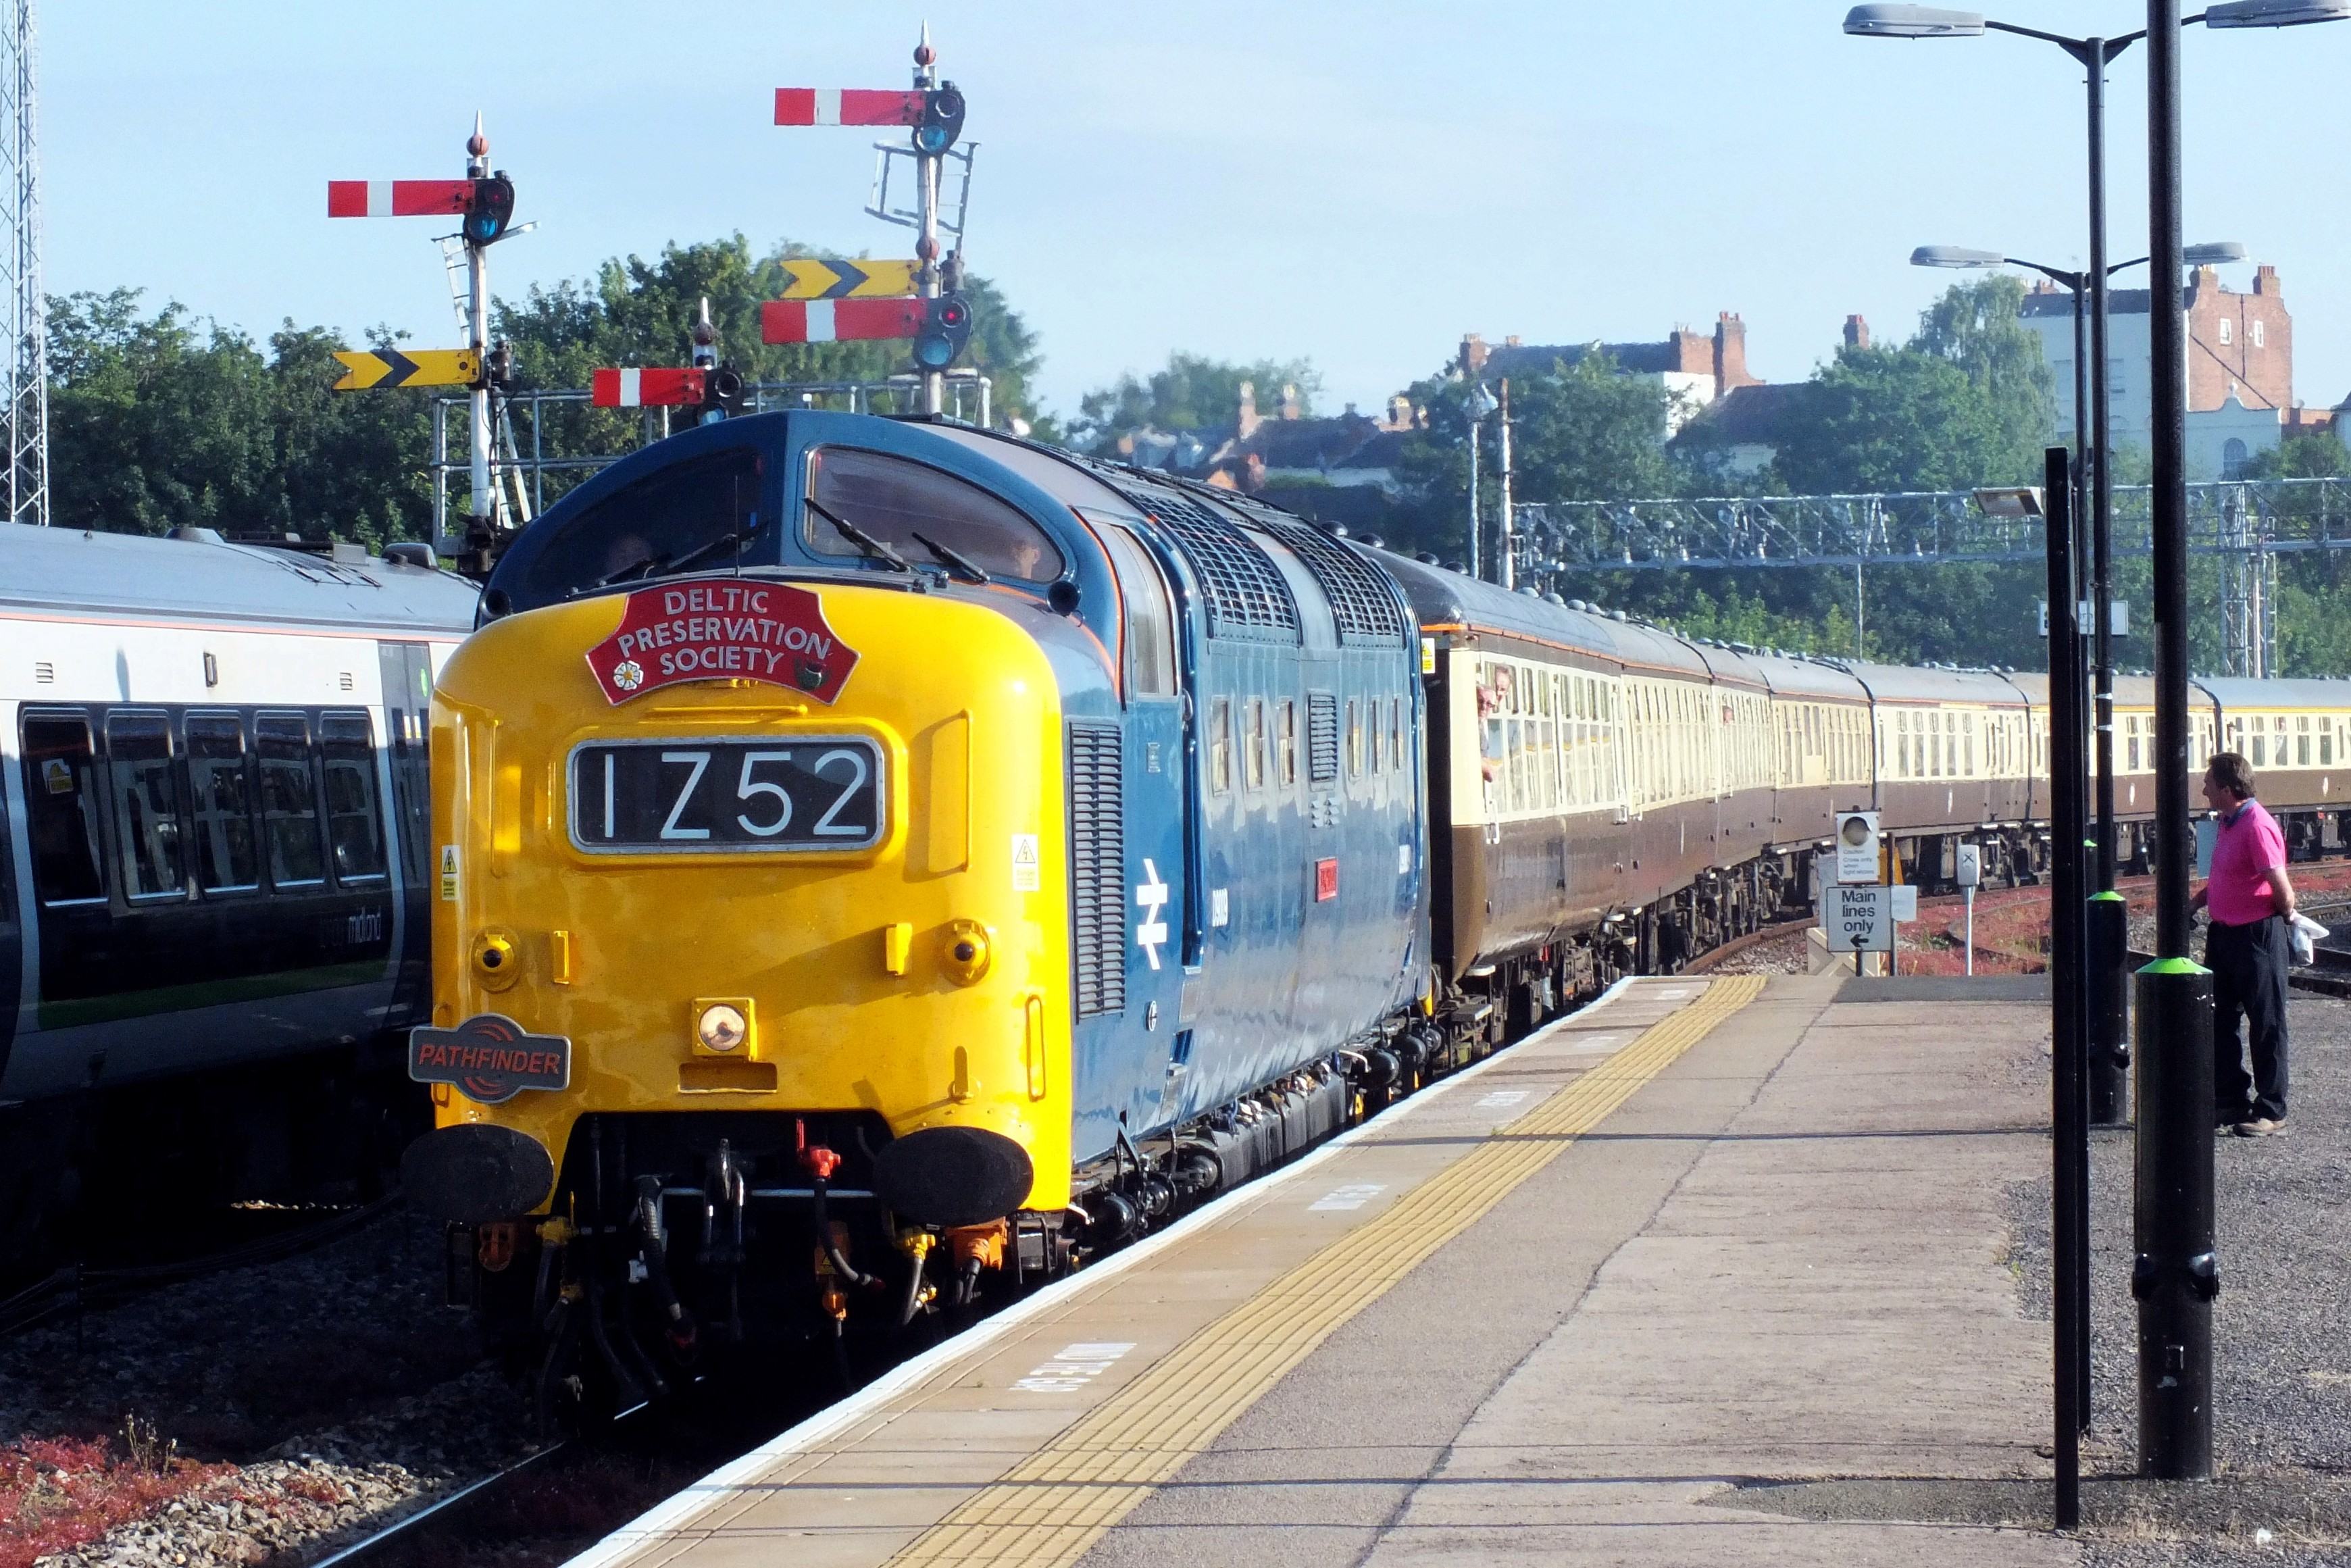 17 June 2017 Shrub Hill 104.jpg